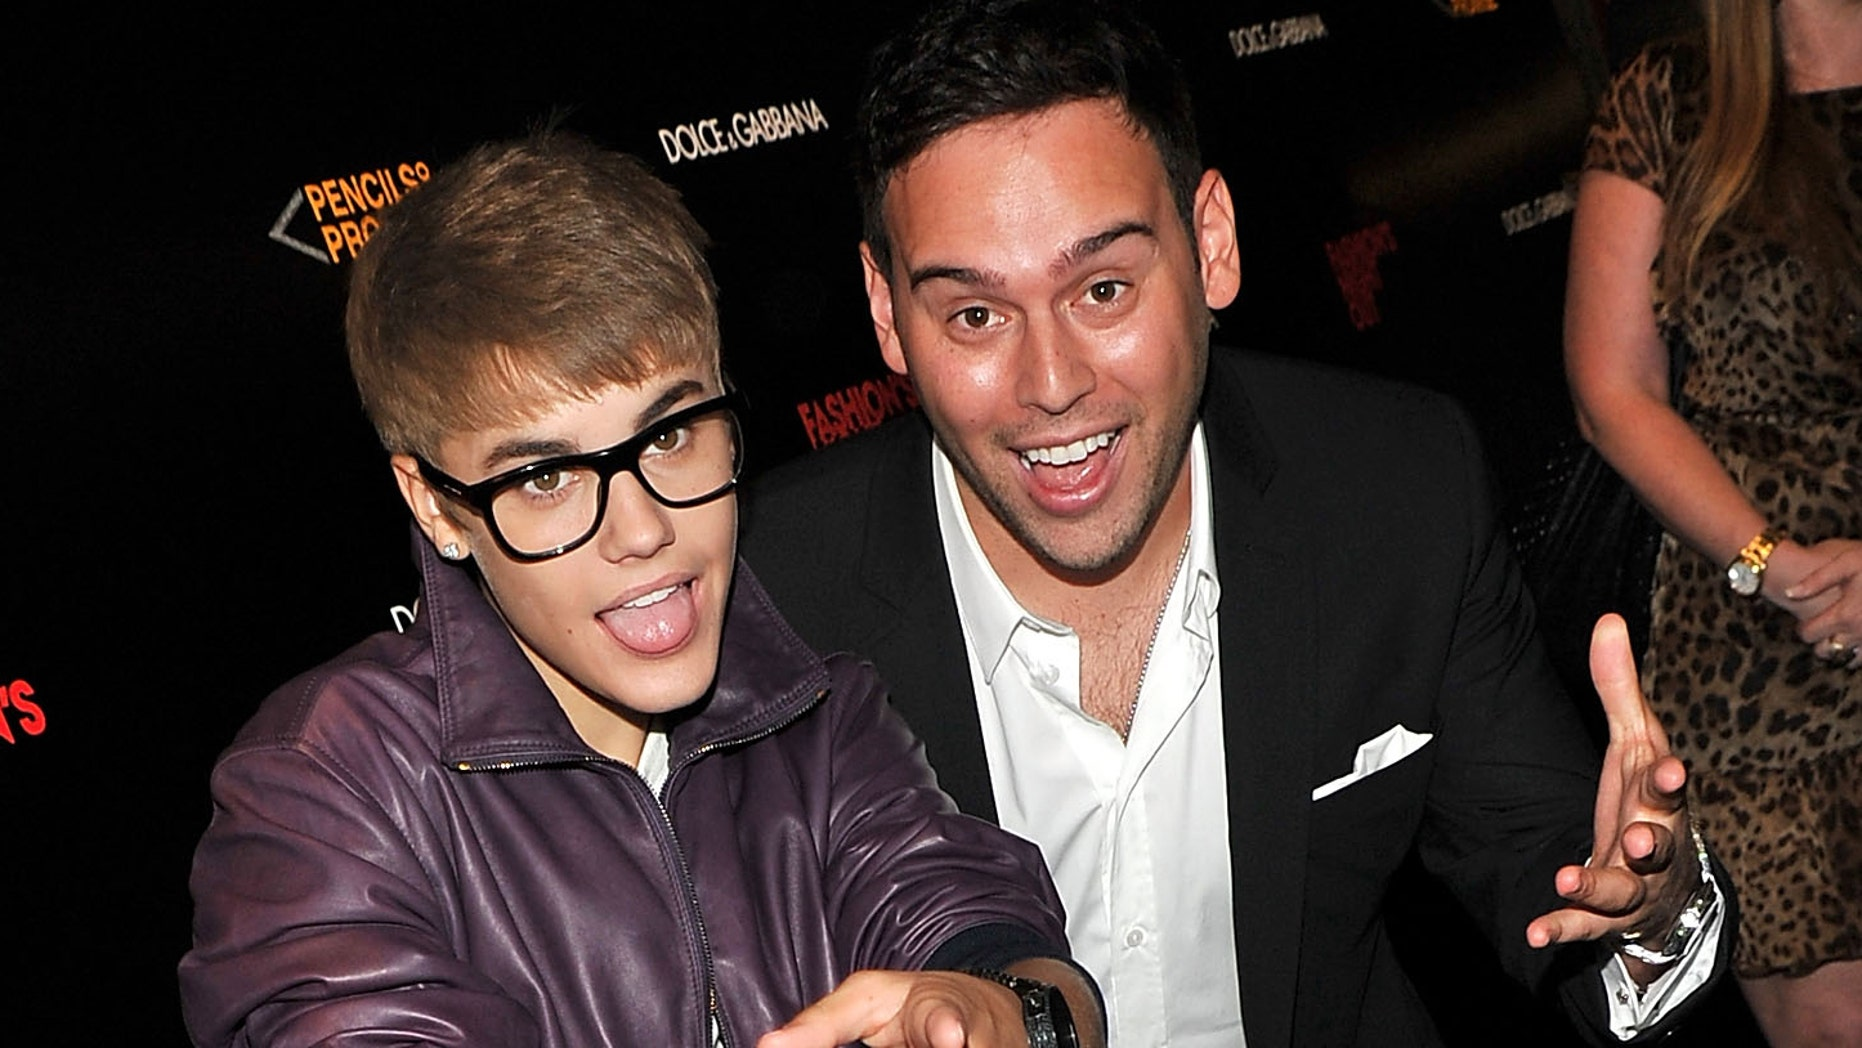 Justin Bieber and Scooter Braun (Photo by Stephen Lovekin/Getty Images for Dolce & Gabbana)